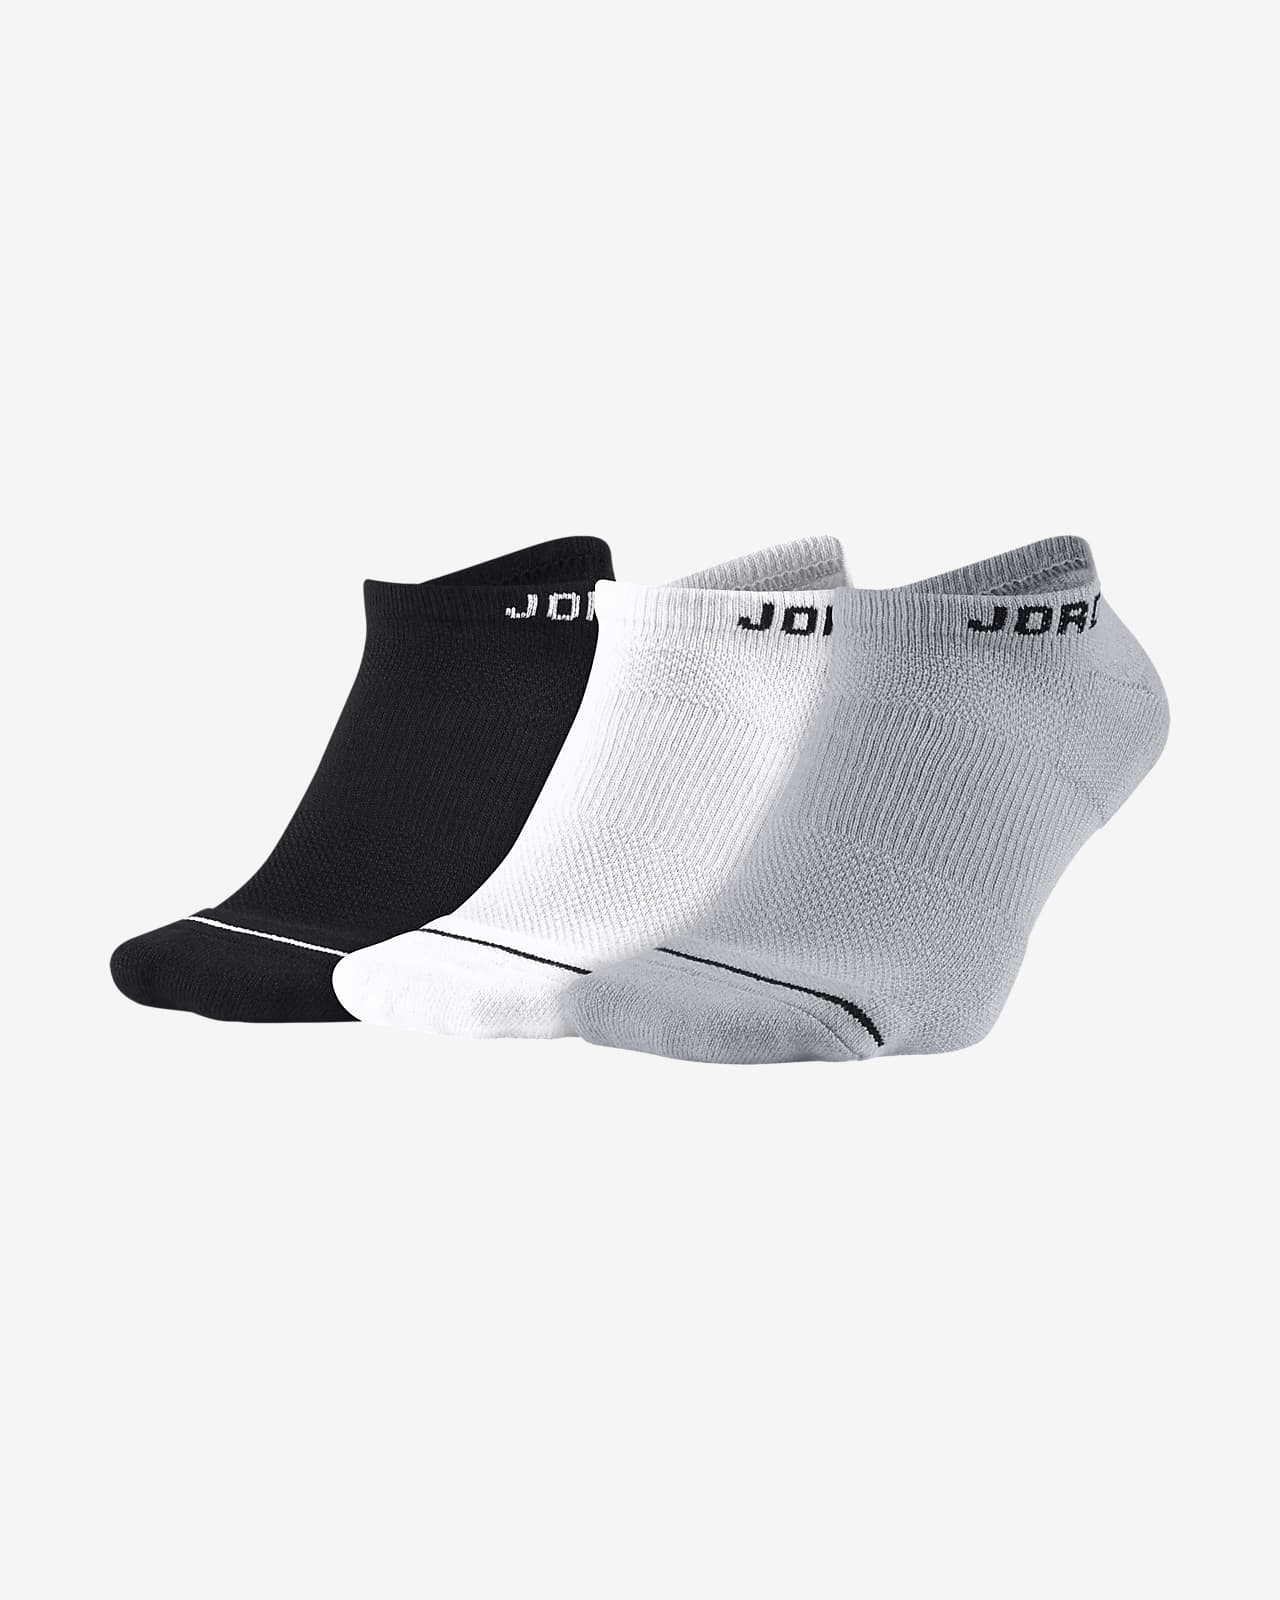 Jordan Everyday Max Unisex No-Show Socks (3 Pair)